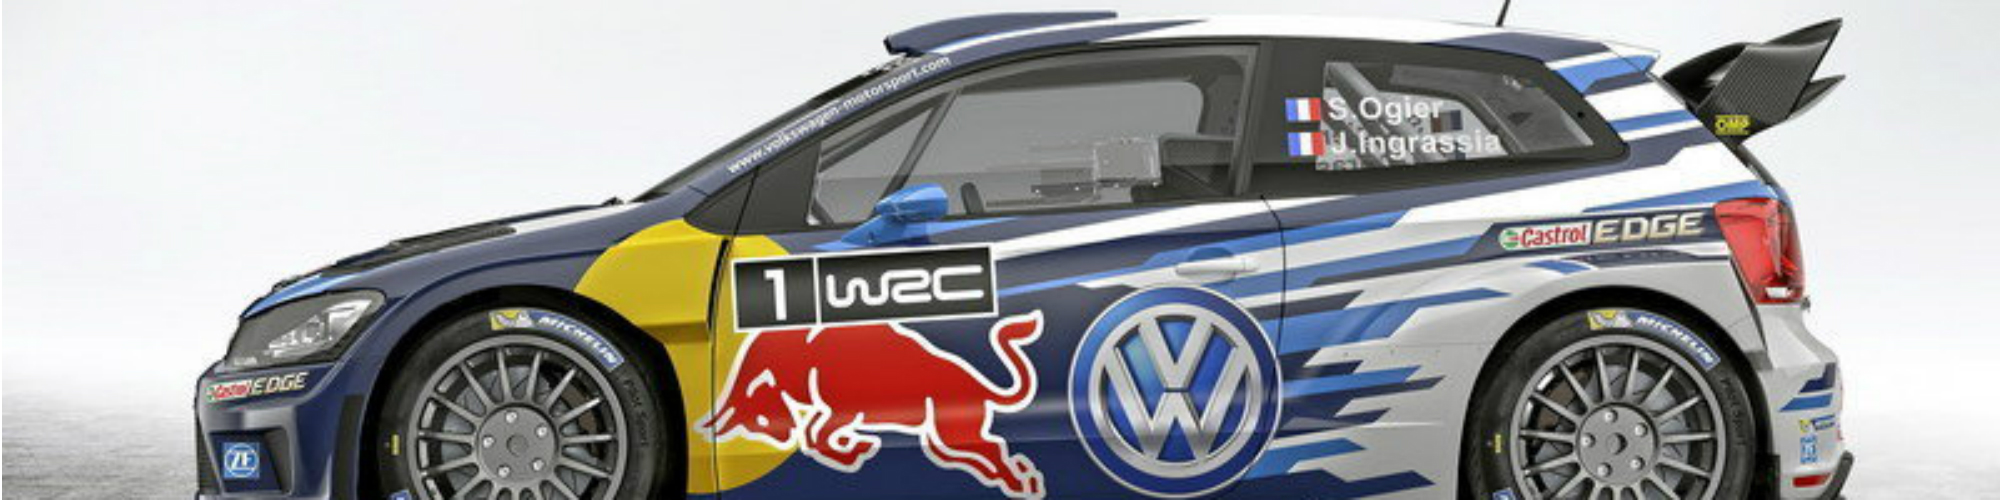 Since its inception a couple of years ago, the Volkswagen Polo R WRC has seen tremendous success in competition, winning the World Rally Championship Constructor's Championship title from 2013 to 2015. Due to its domination in the world of rally car racing over the past few years, it hardly comes as a surprise that the Volkswagen Polo R WRC is now the back-to-back winner of the Autosport Award for Rally Car of the Year.